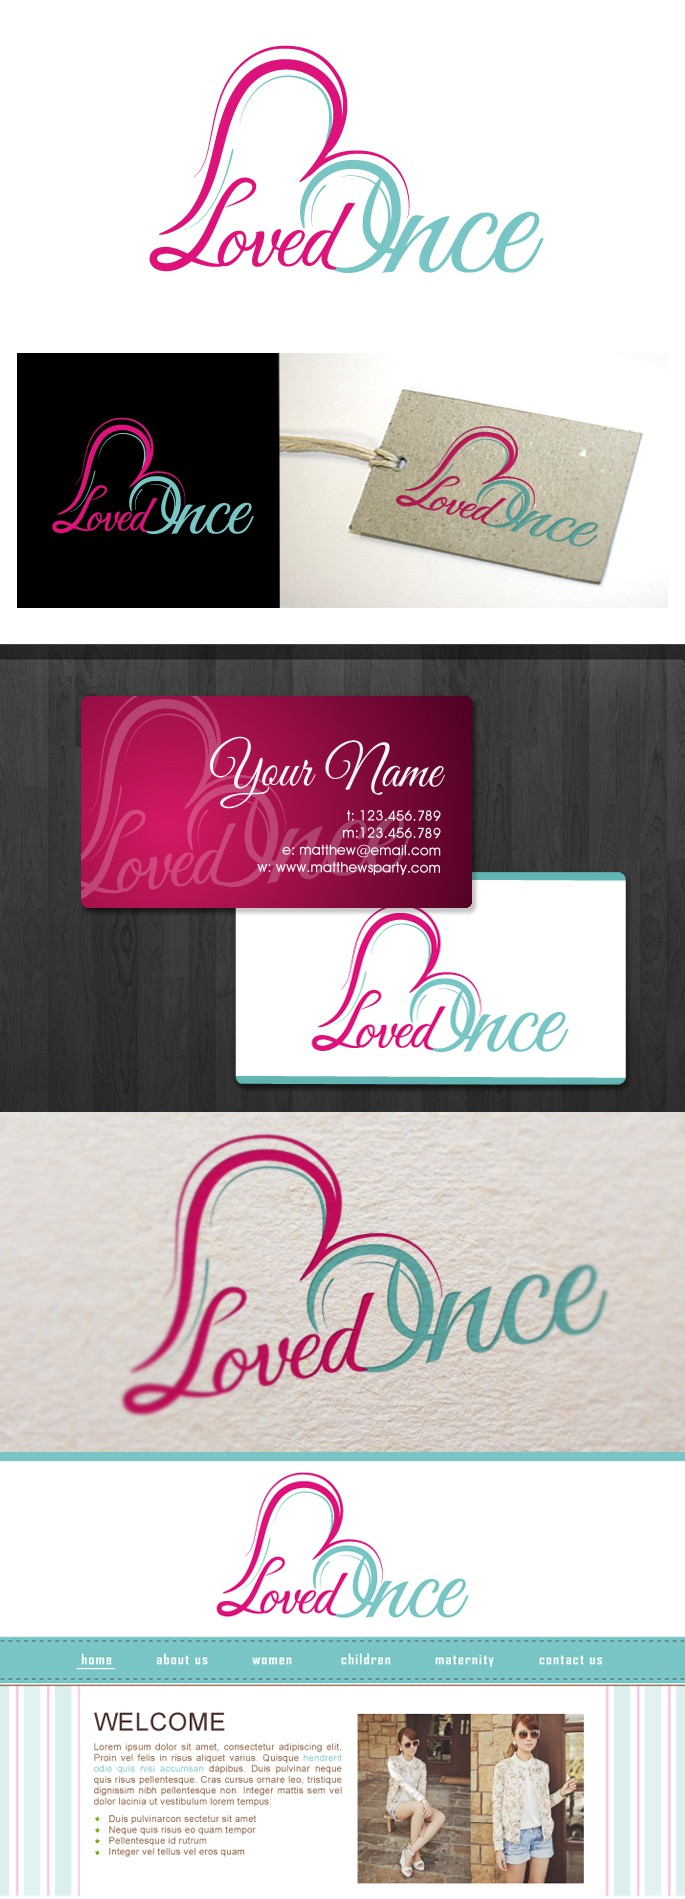 New logo wanted for Loved Once